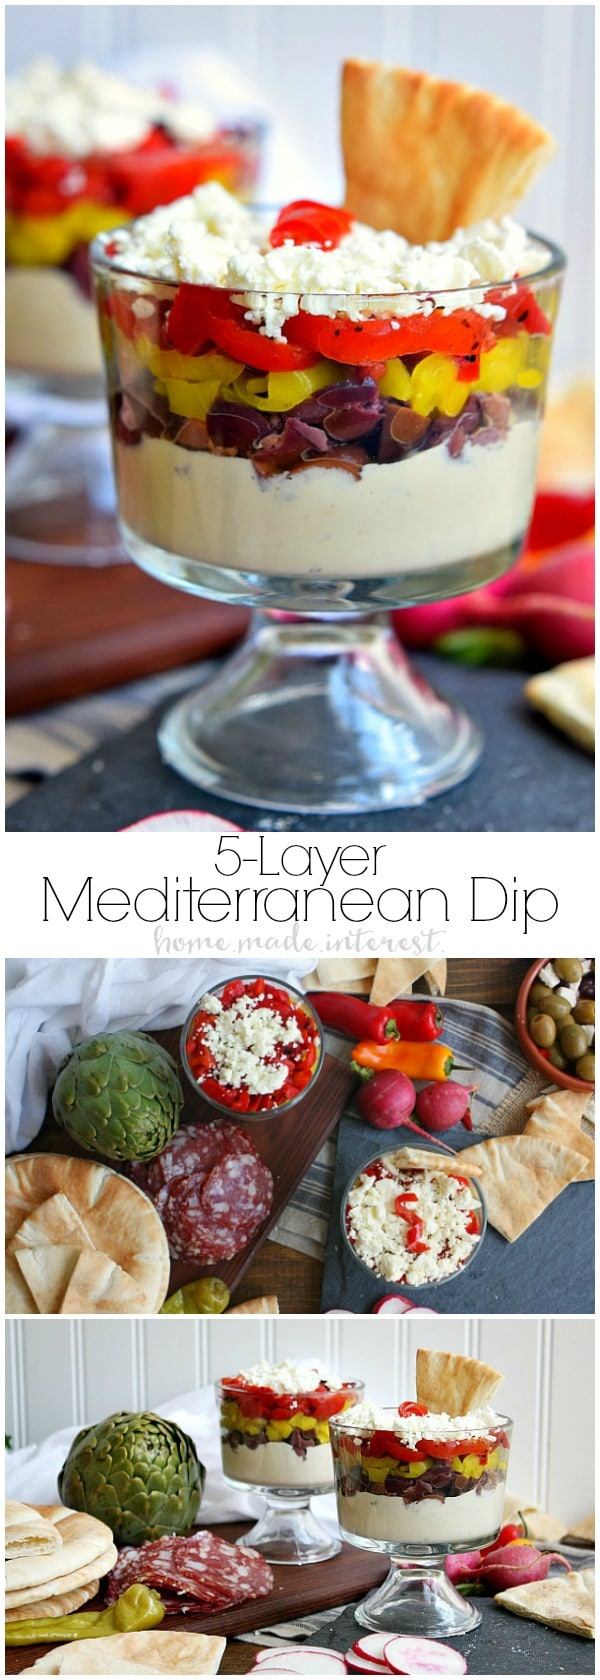 This simple mediterranean appetizer is a 5 layer Mediterranean Dip inspired by the traditional 7 layer taco dip. It is filled with layers of hummus, olives, Golden Greek Peperoncinis, roasted red peppers, and feta cheese. You can make this as a large bowl of dip or individual appetizers for your guests and serve them with pita bread. This easy appetizer is perfect for parties!